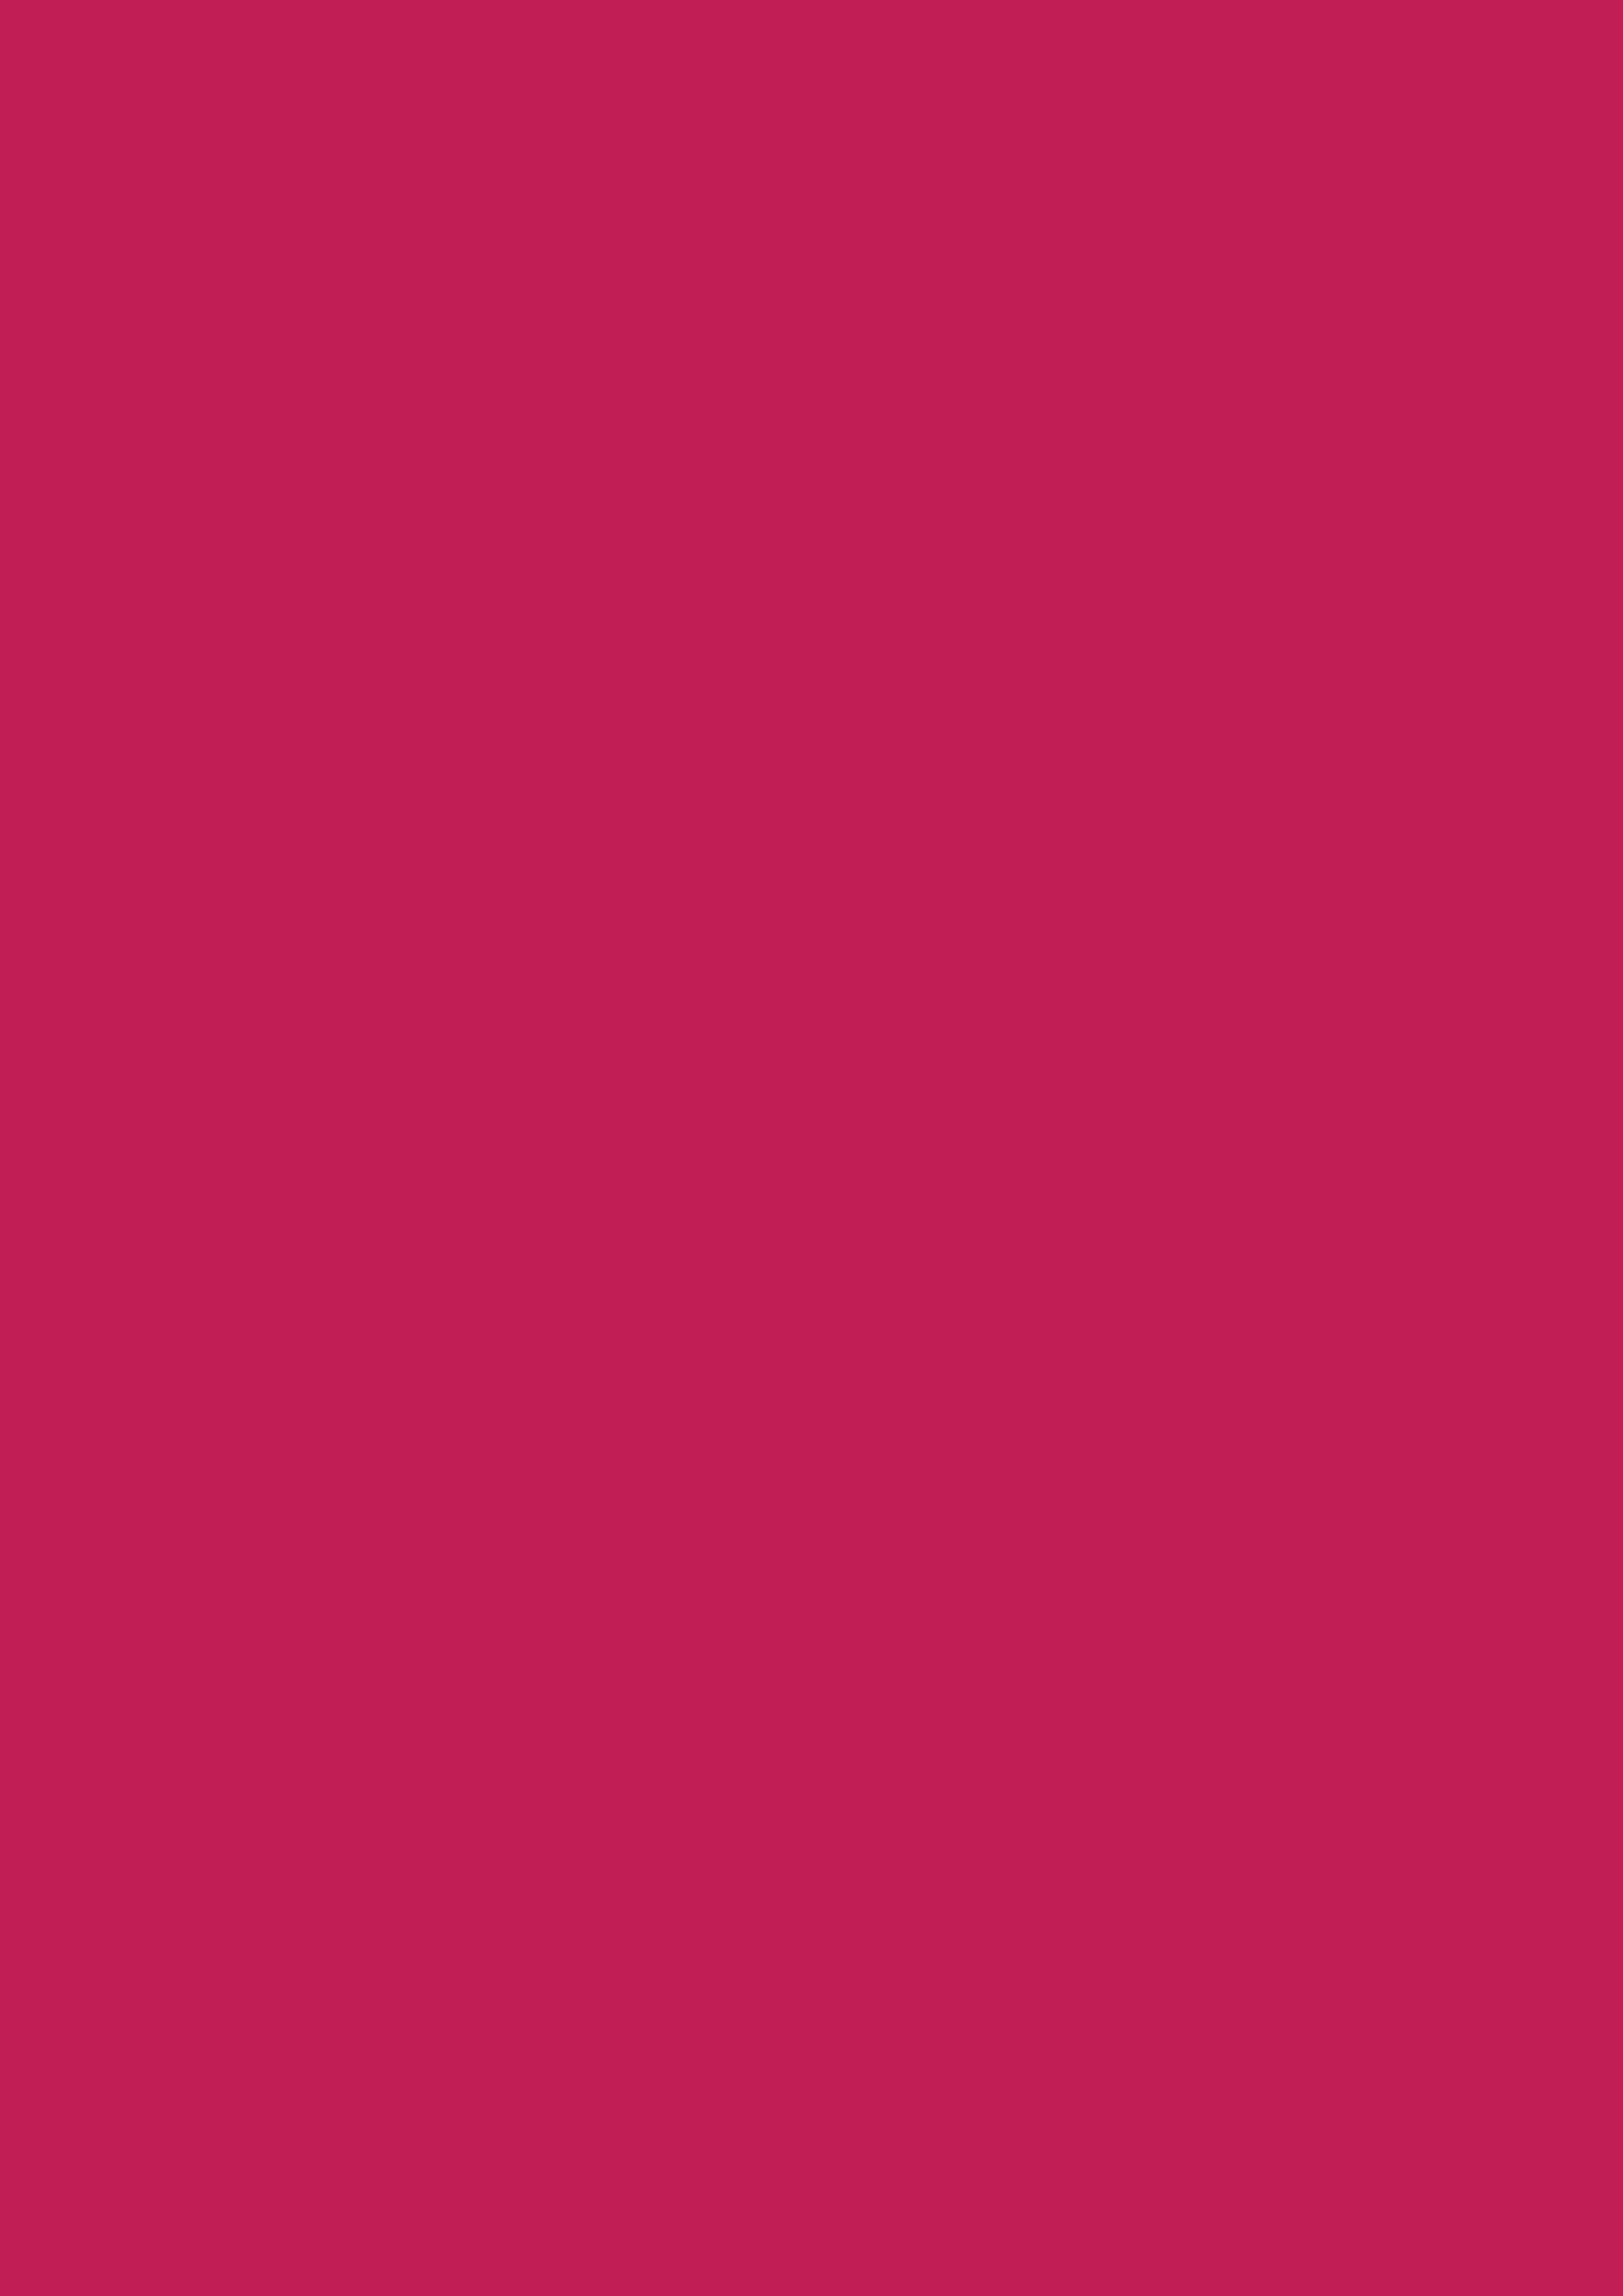 2480x3508 Rose Red Solid Color Background